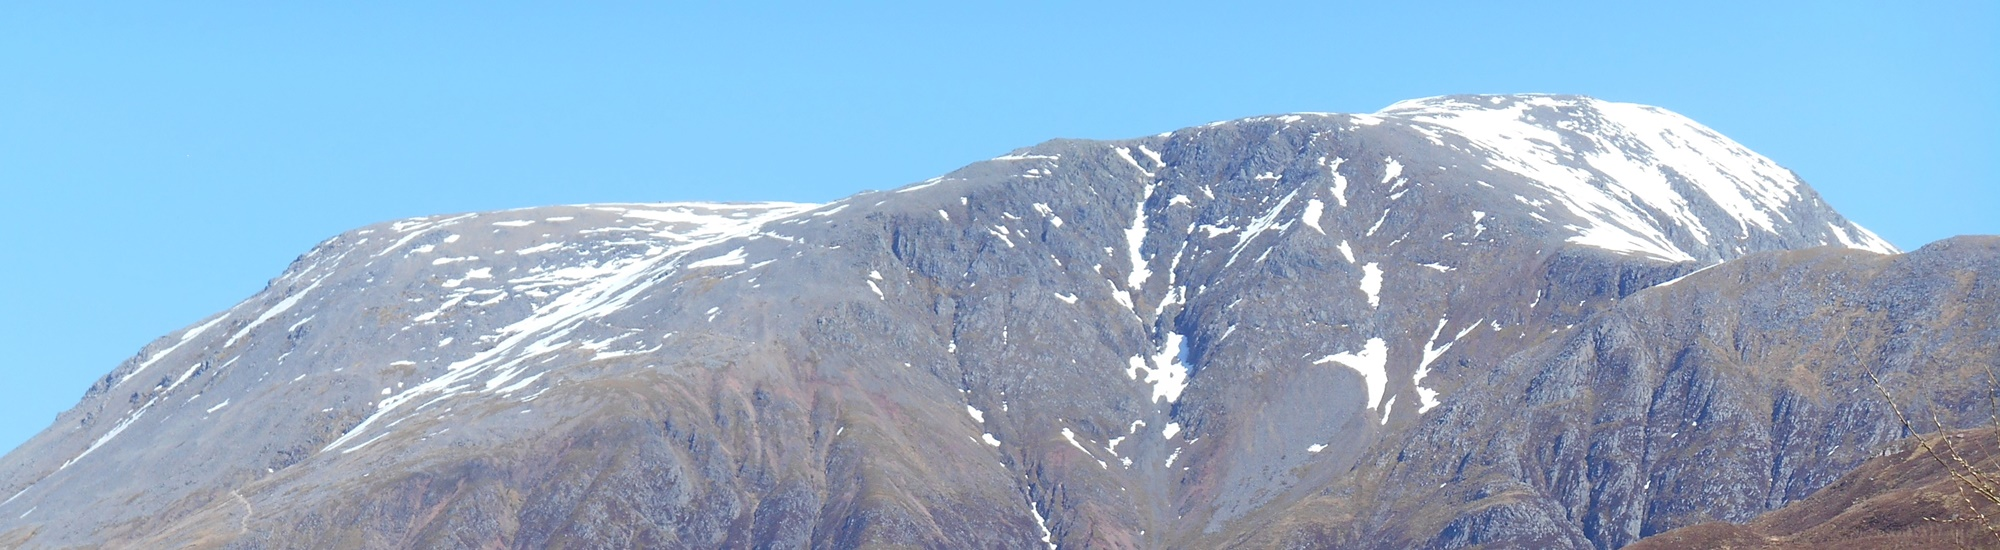 Summit of Ben Nevis with a dusting of snow and clear blue sky.